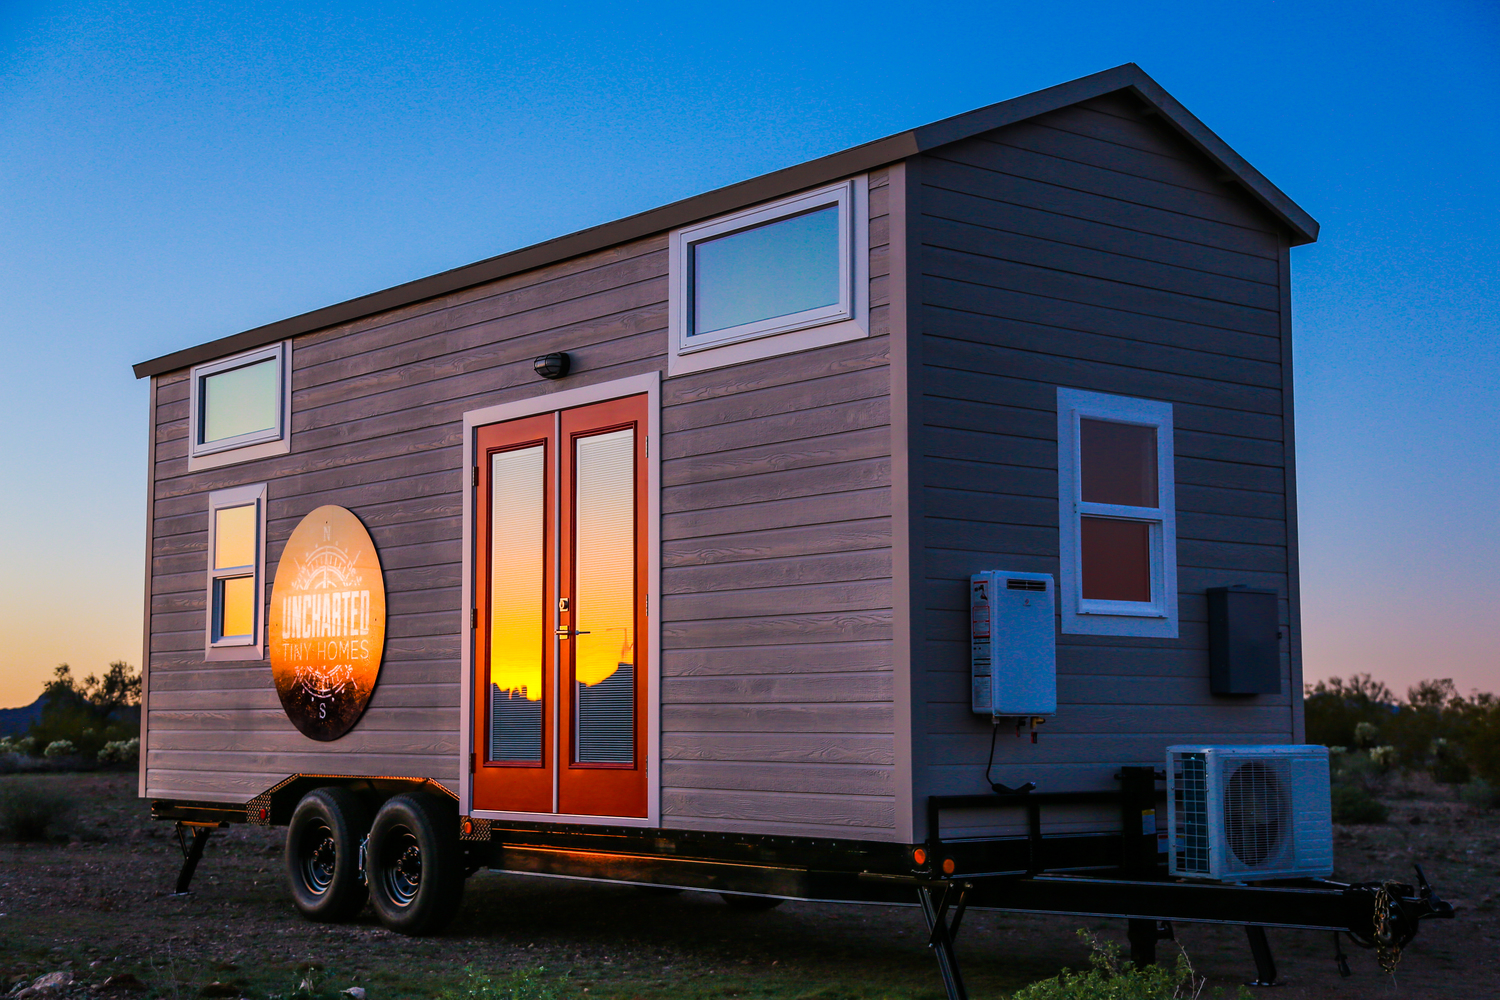 Small Airstream Trailer >> Tiny Dream Home On Wheels With Two Sleeping Lofts ...